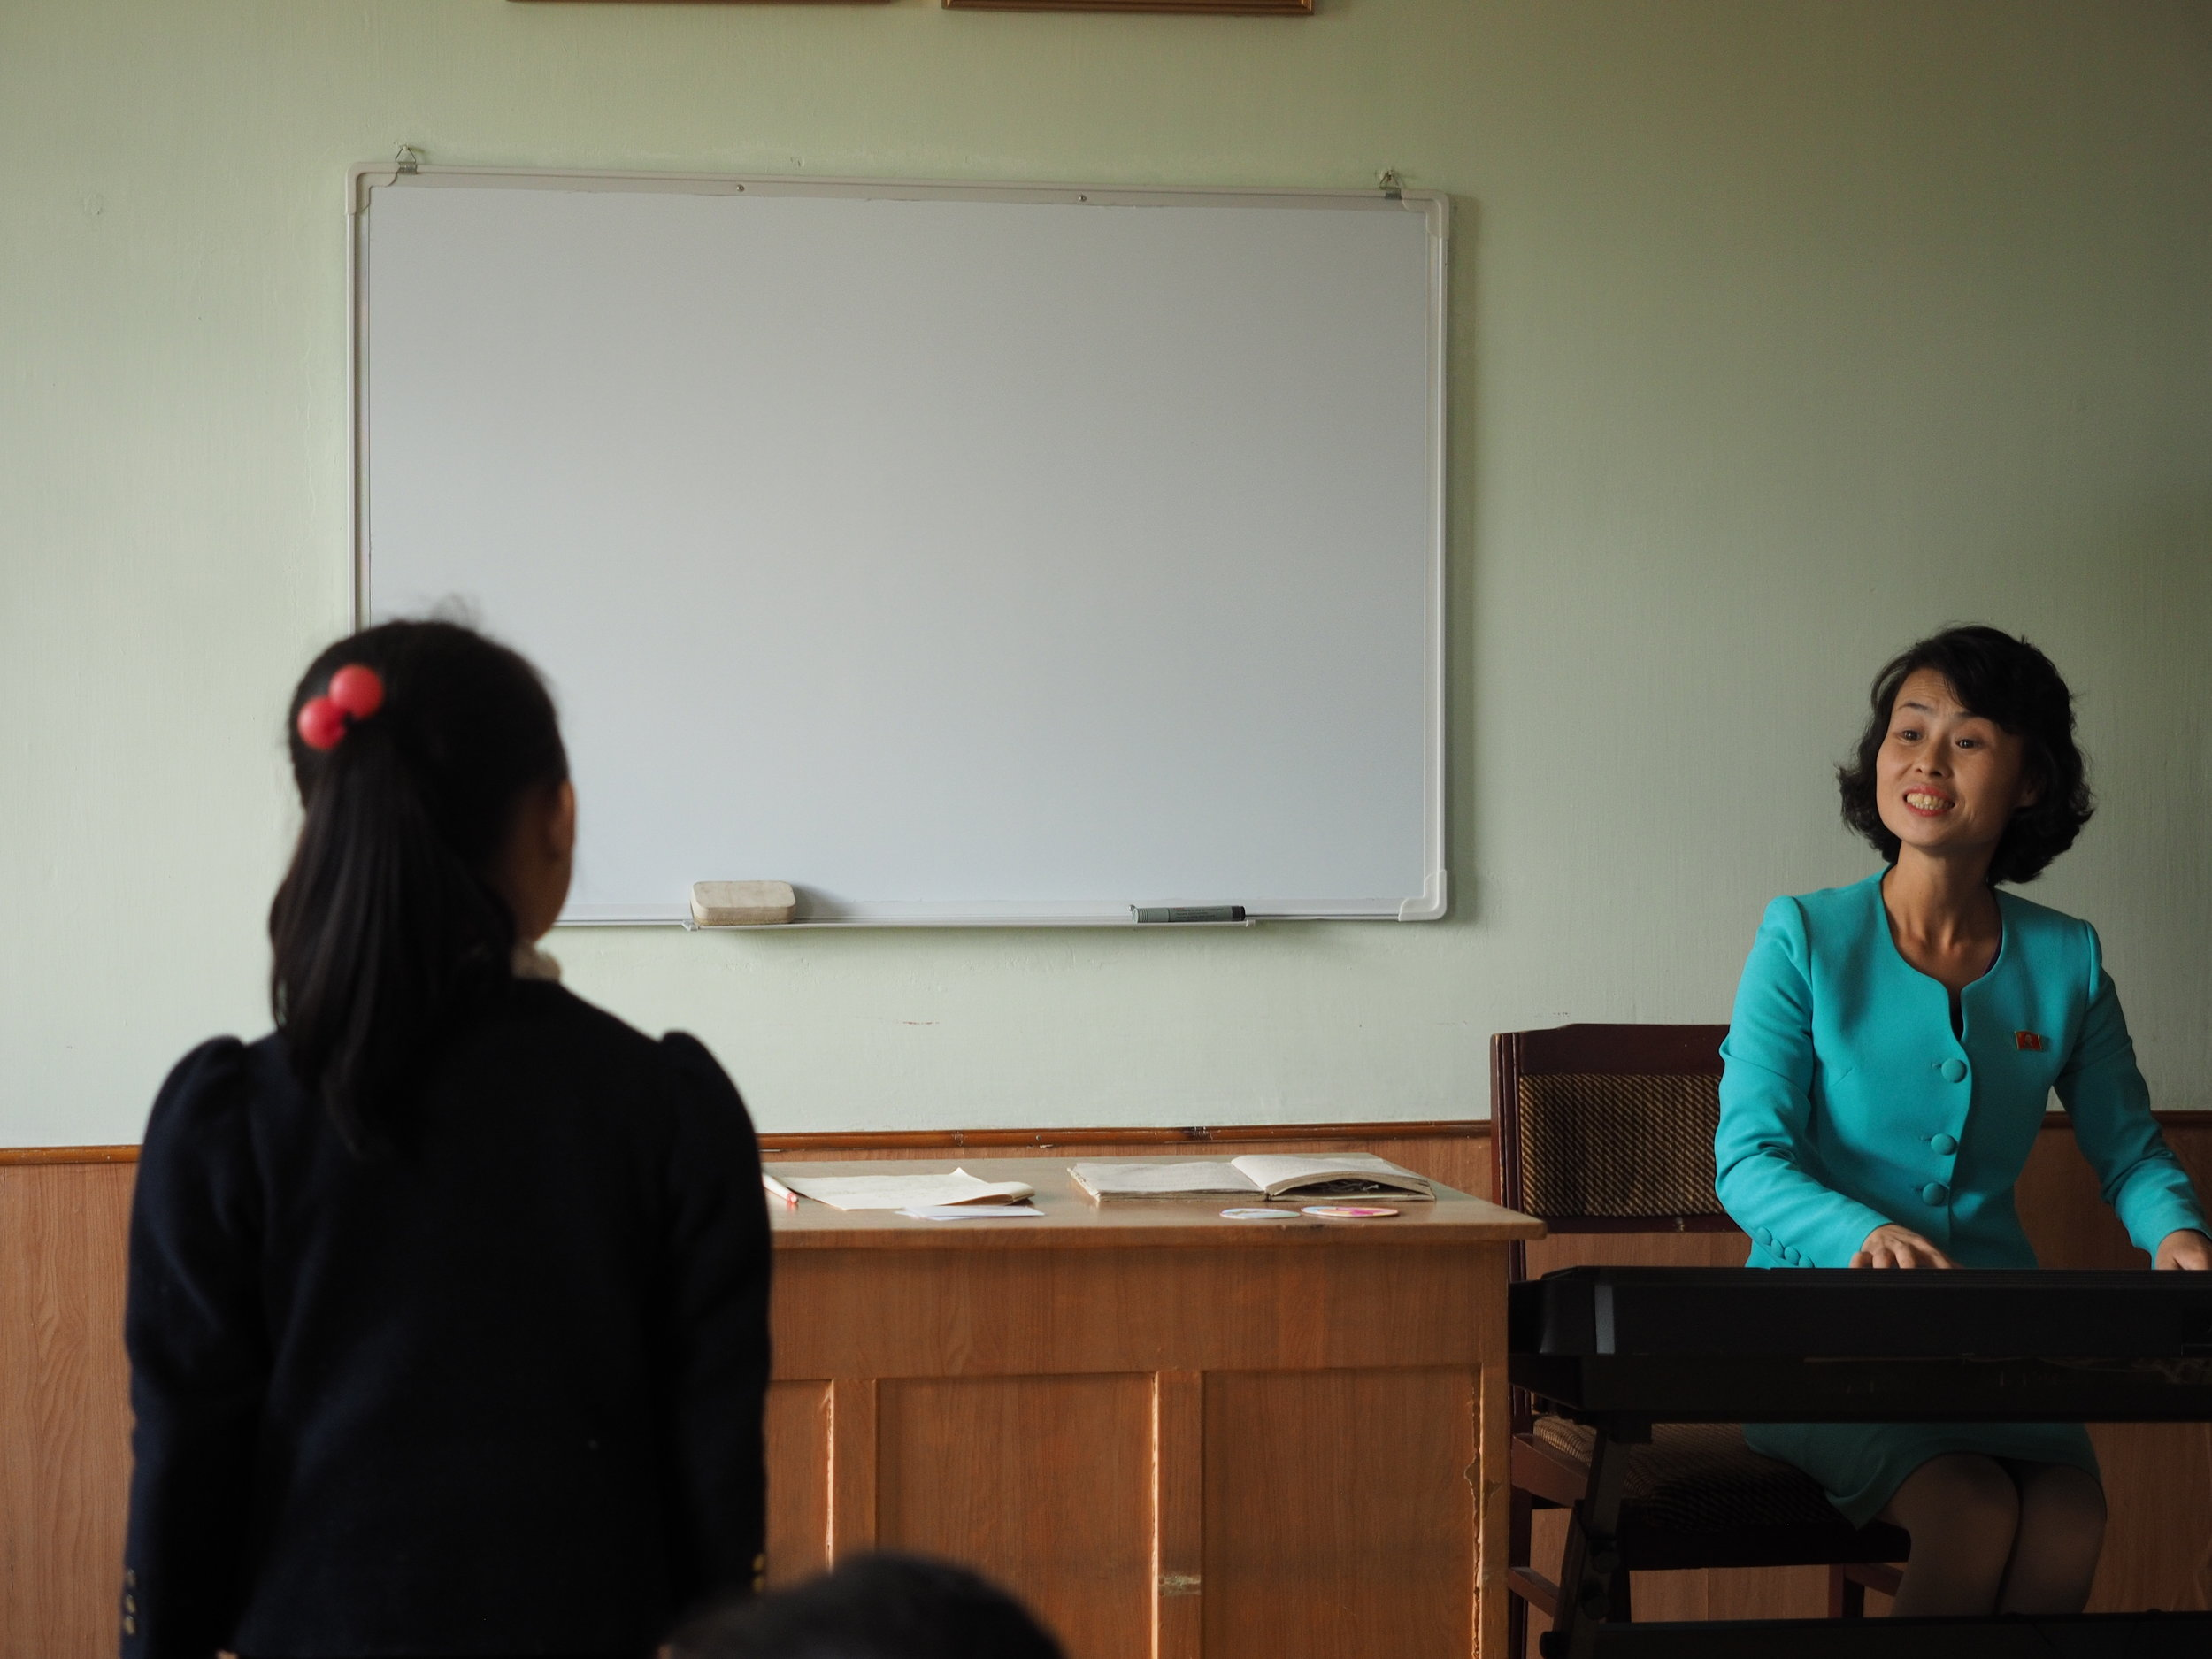 A North Korean music teacher and her student.